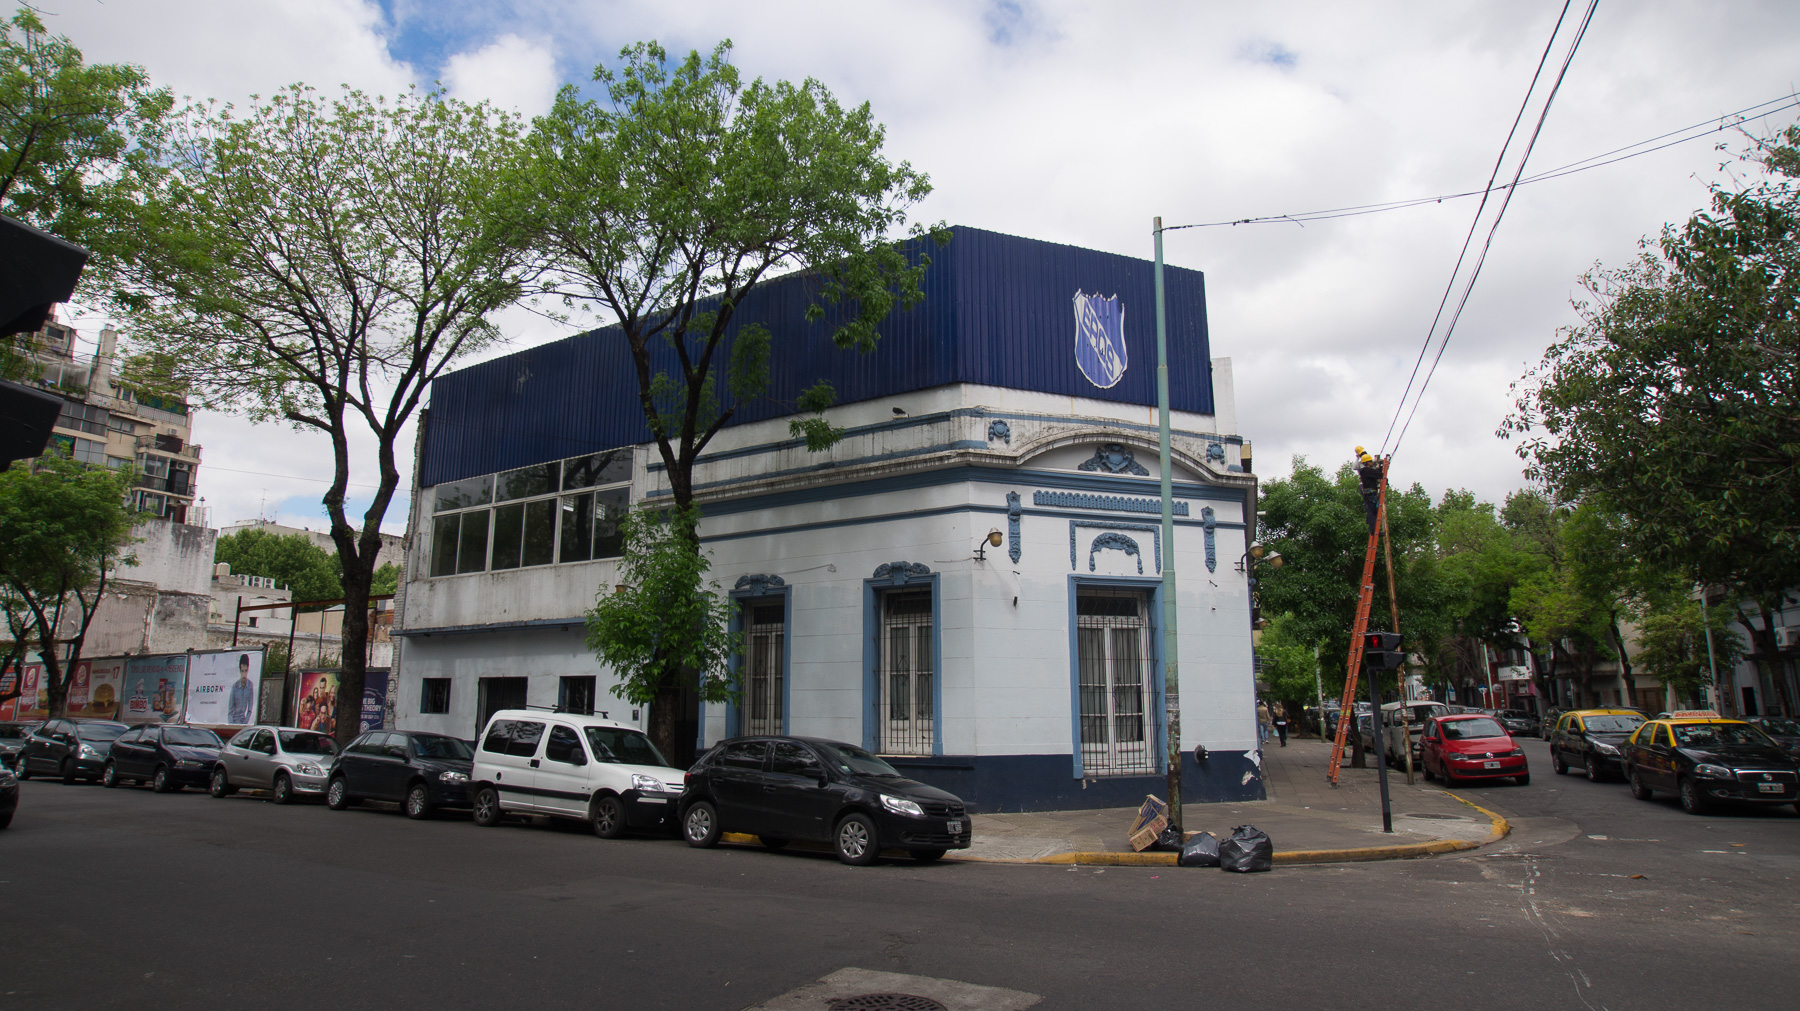 Buenos Aires Palermo